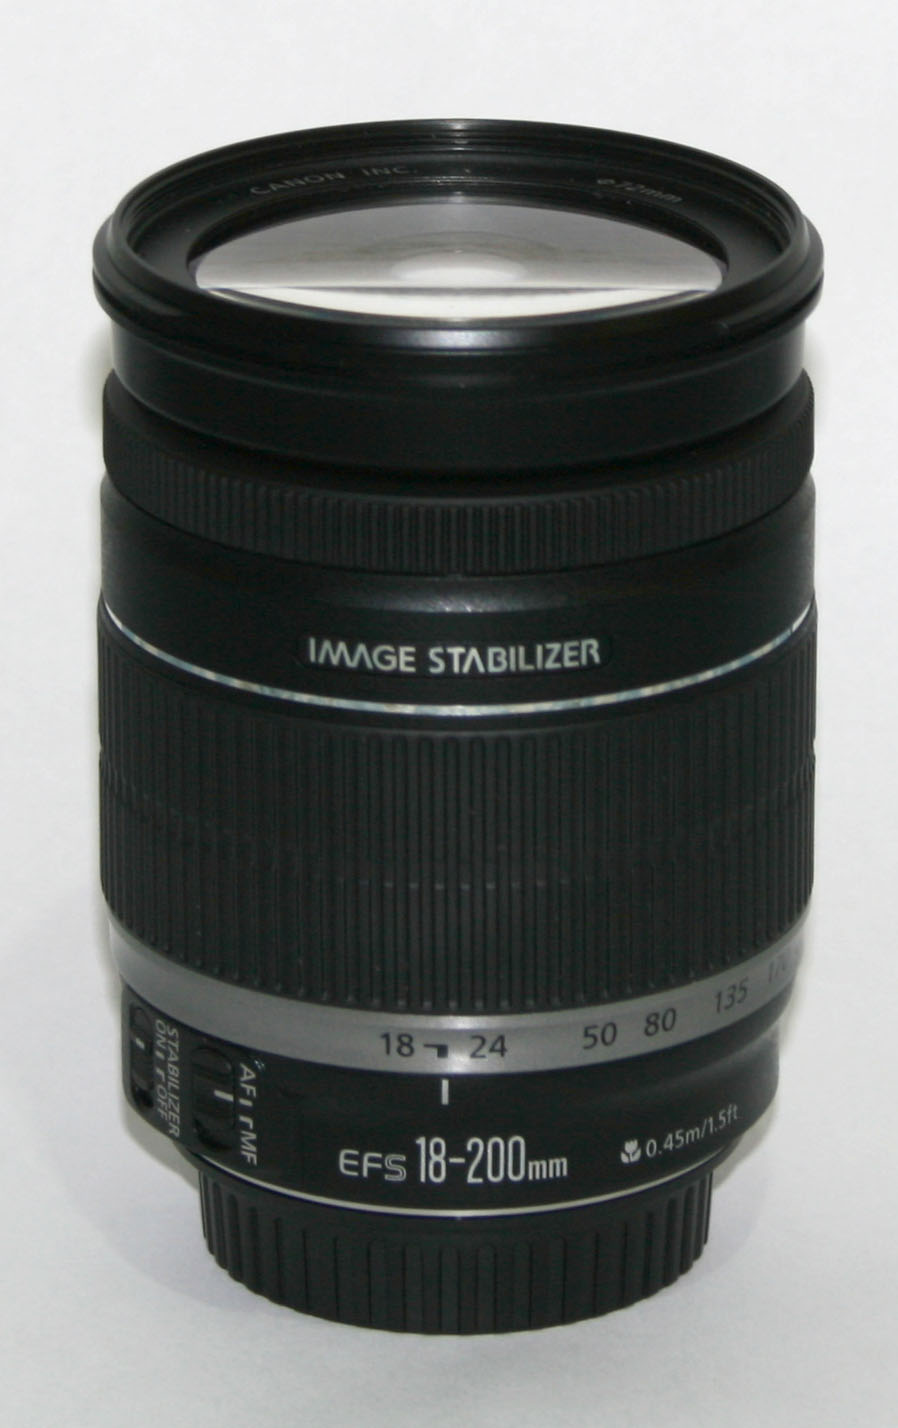 Canon Ef S 18200mm Lens Wikipedia Eos 700d Kit 18 135mm F 35 56 Is Stm